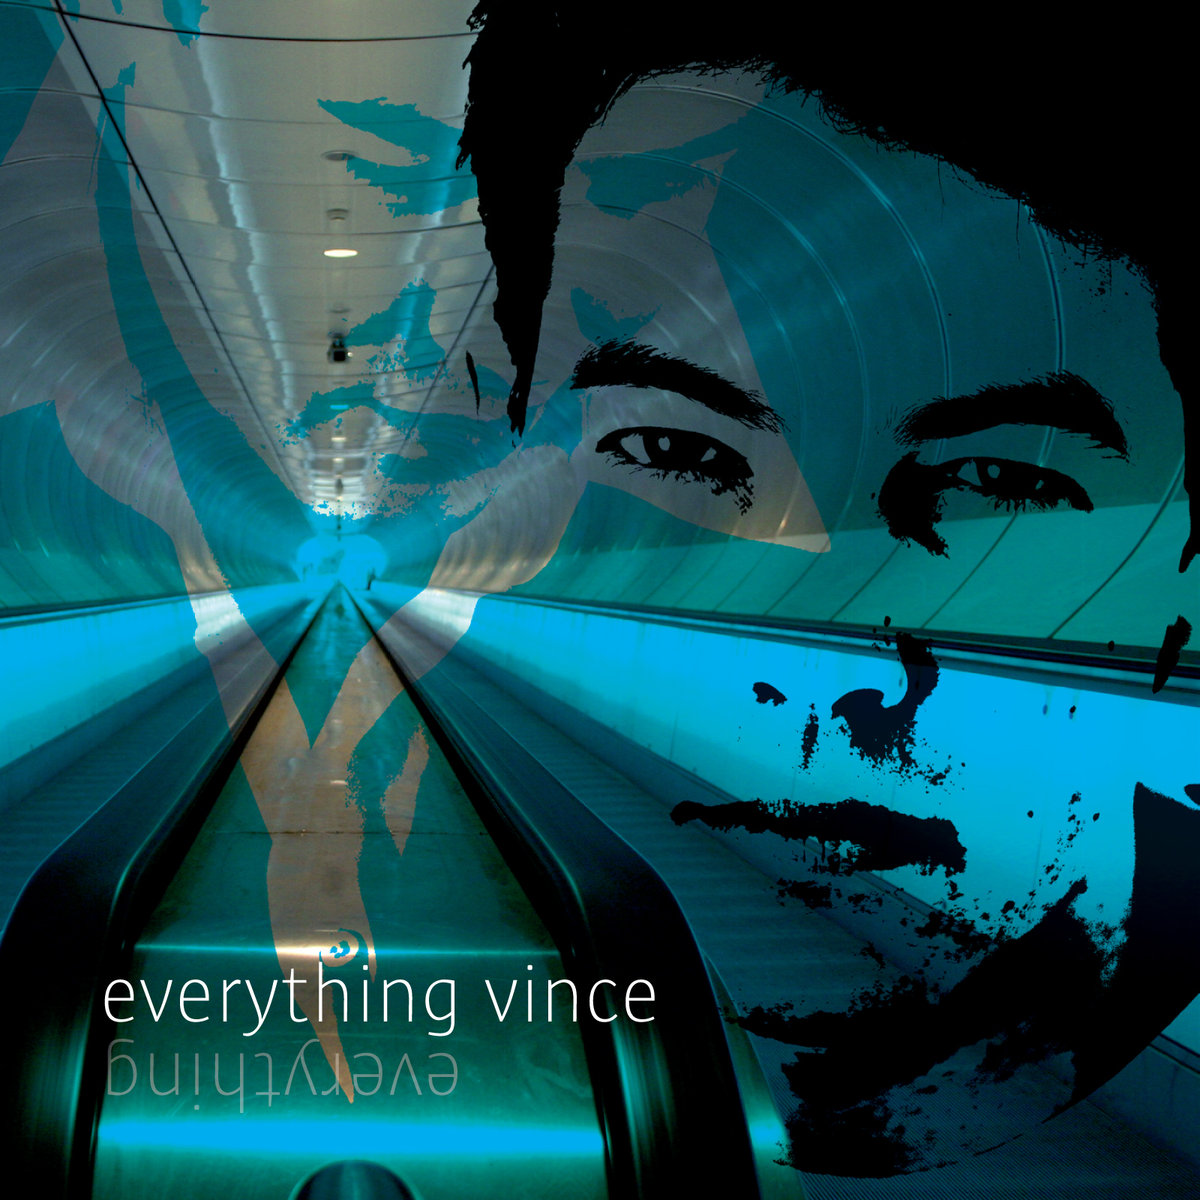 Vince - Labyrinth @ 'Everything' album (pop, pop punk)